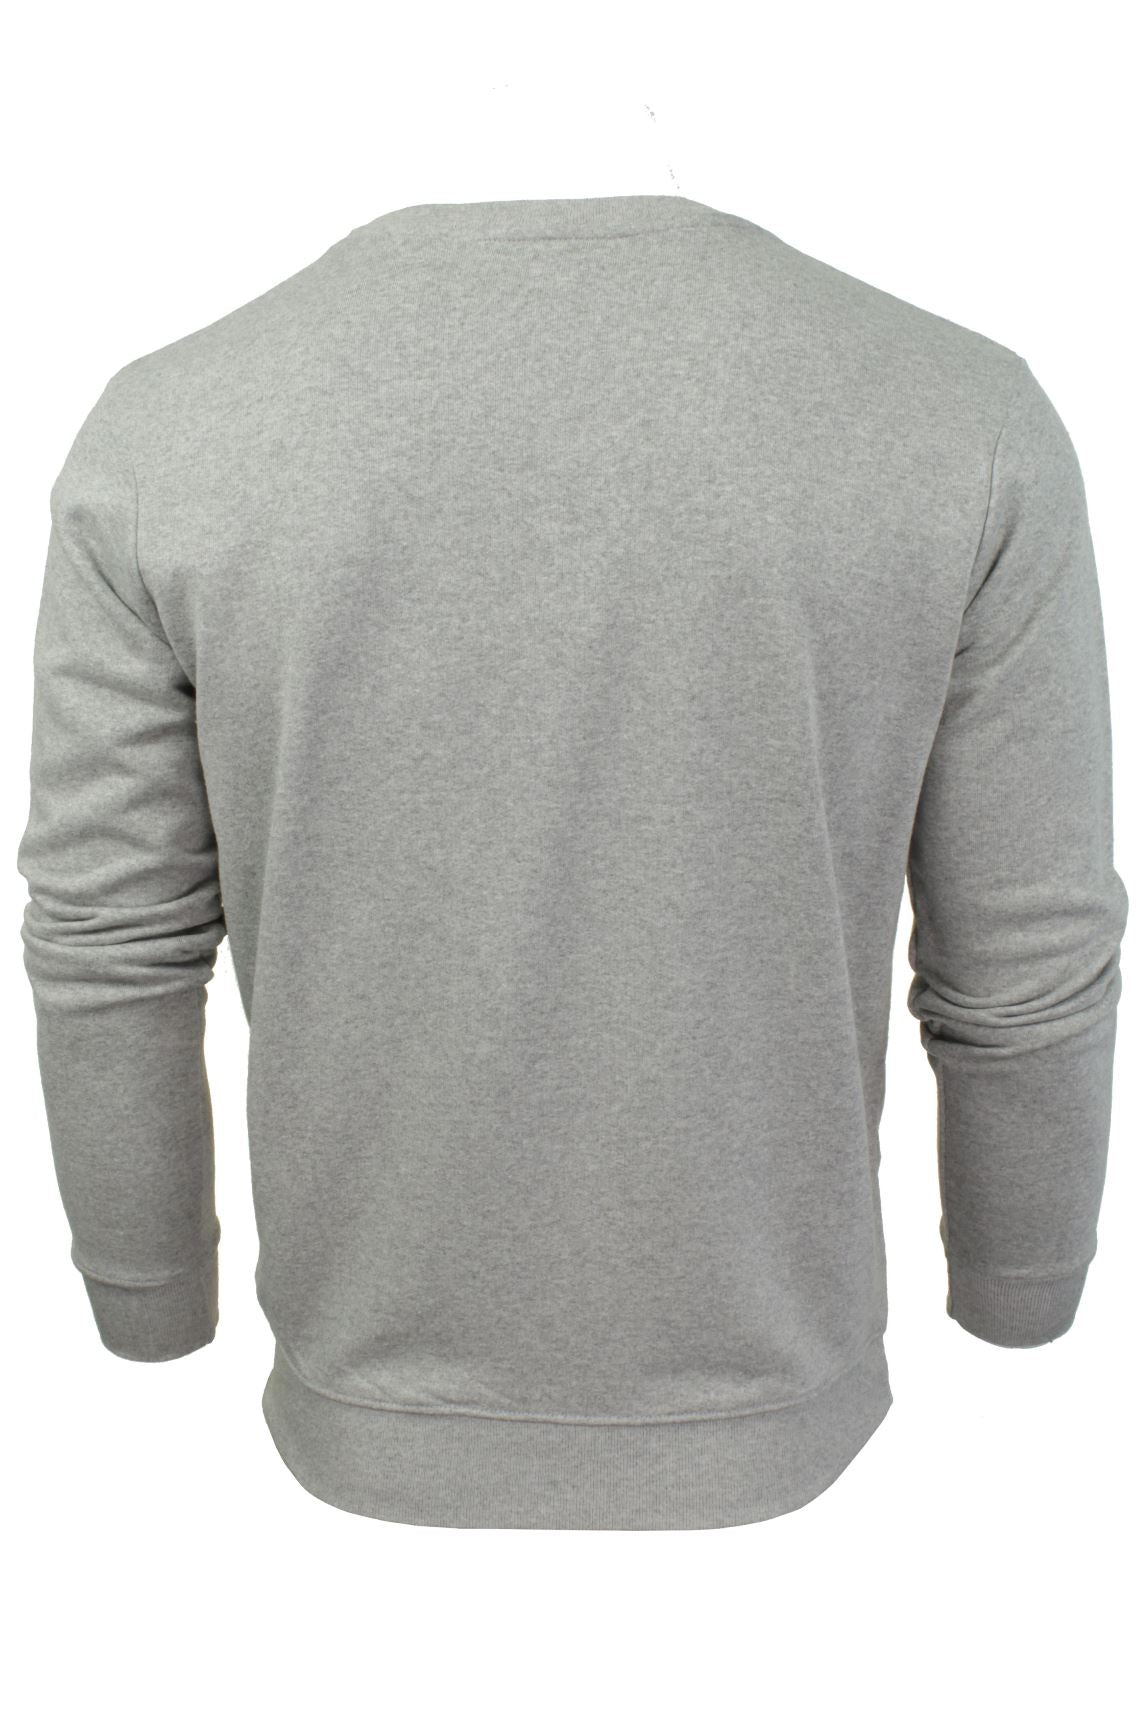 Mens Crew Neck Sweatshirt Jumper by Xact Long Sleeved-3